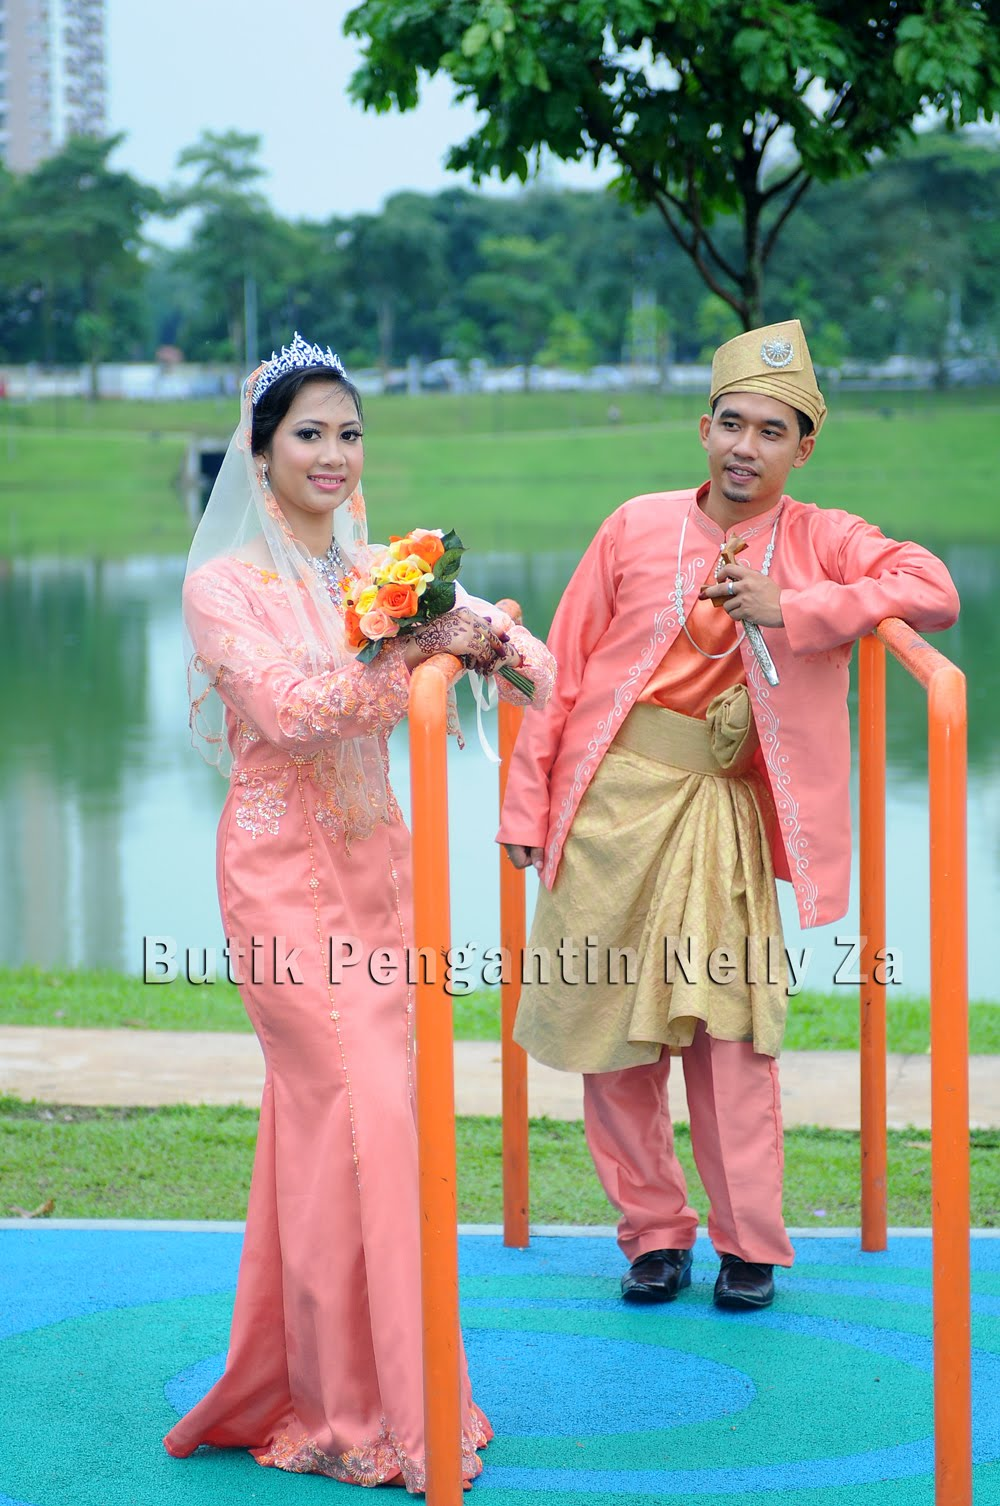 Posted by Butik Pengantin Nelly Za at 6:19 AM | Labels: Makeup |